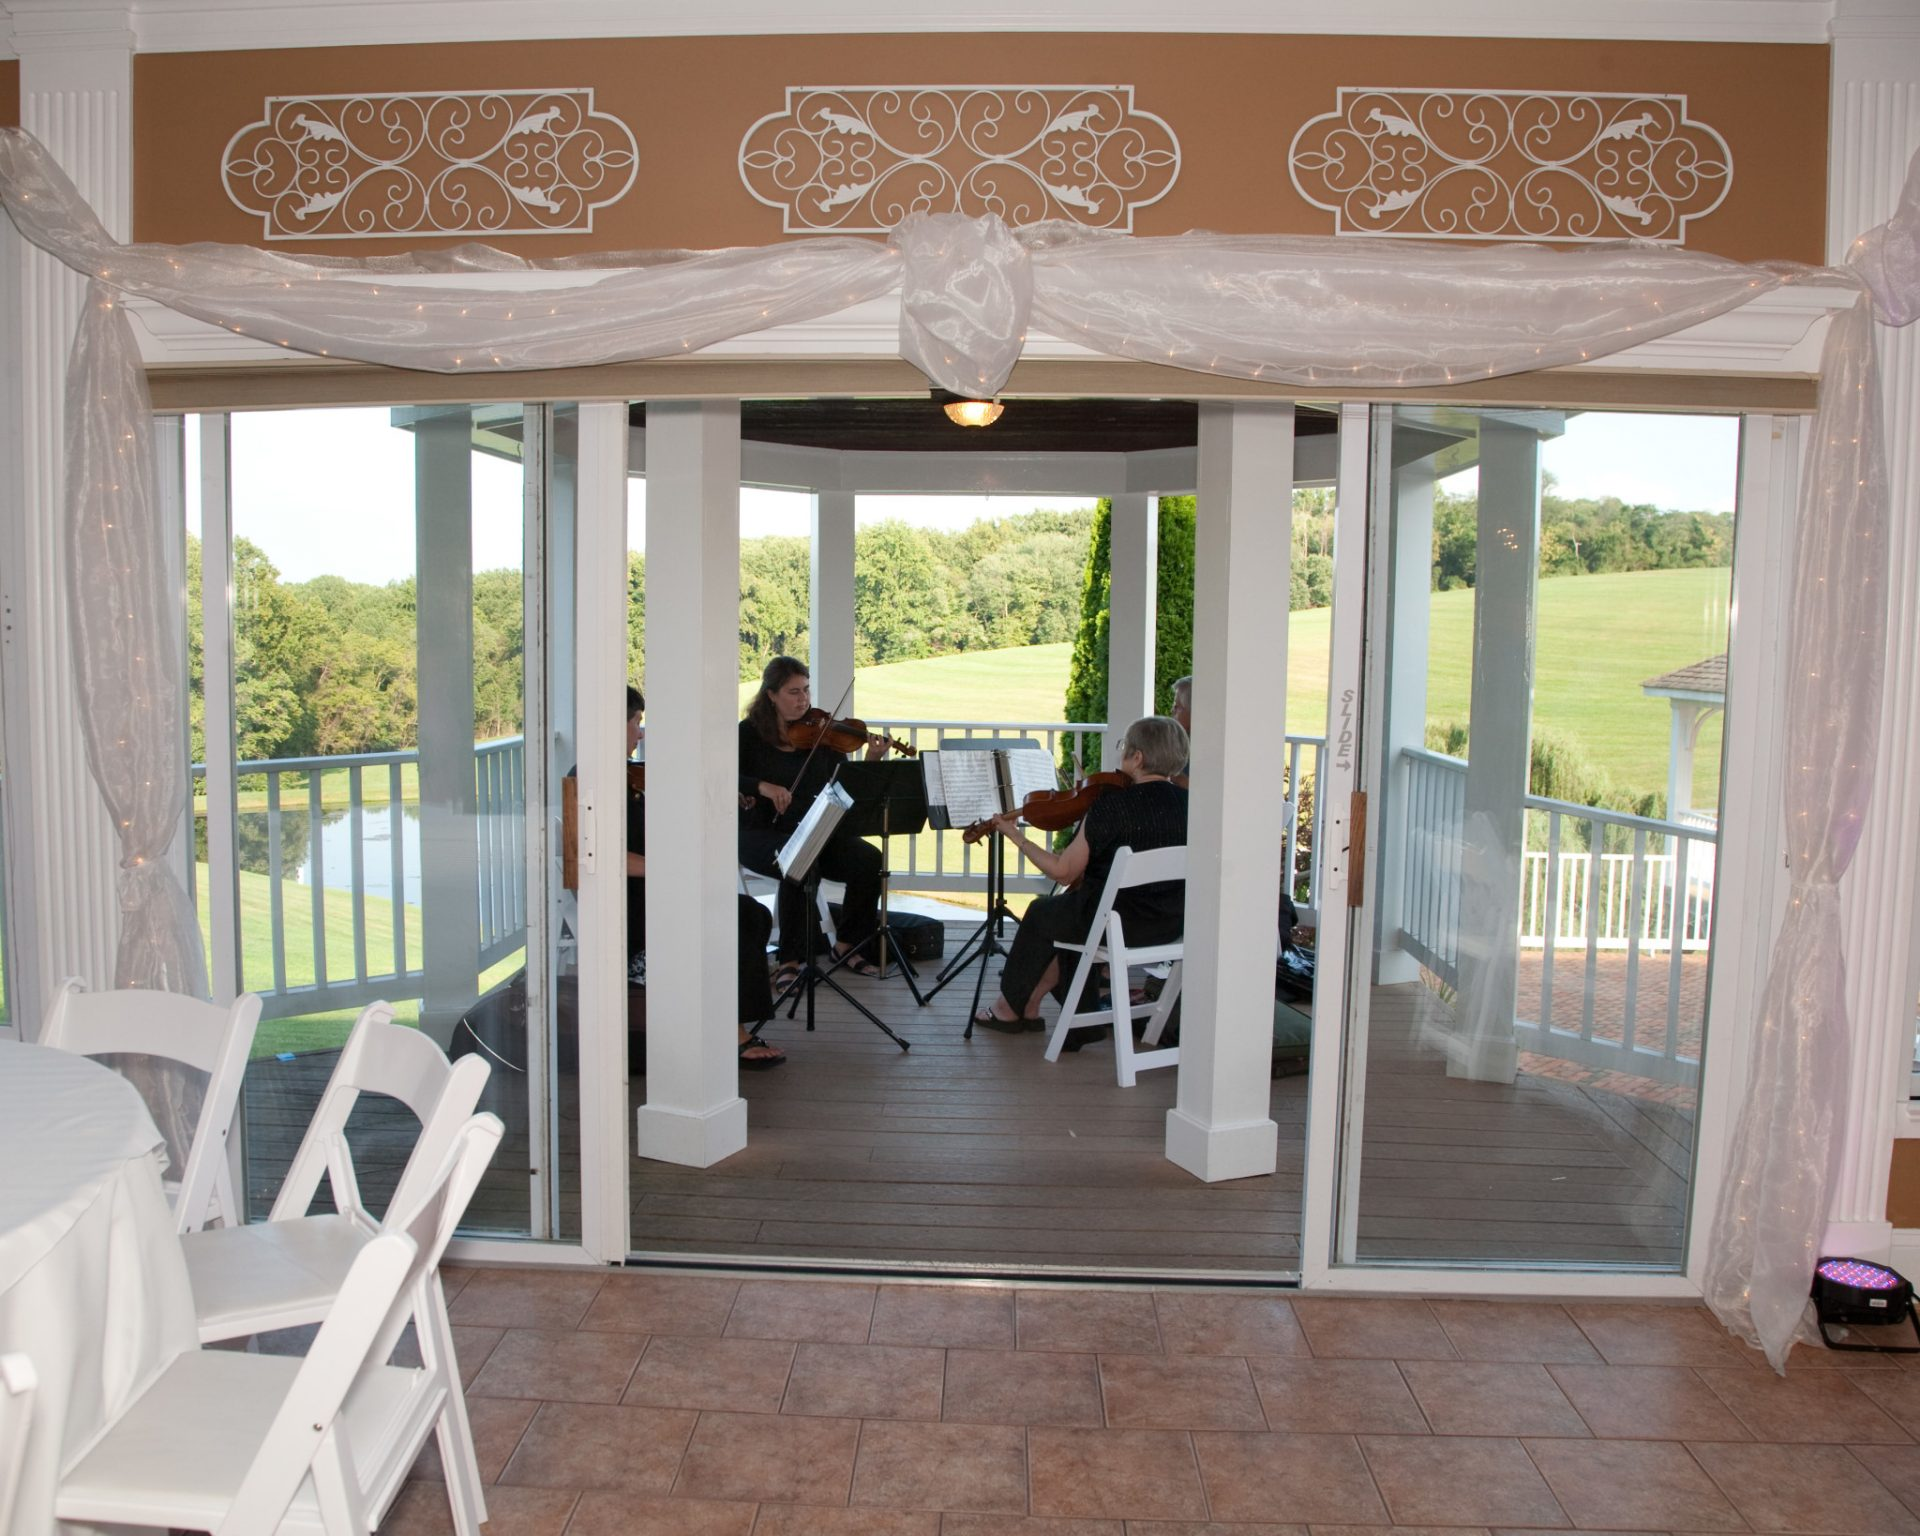 Band plays as wedding in maryland takes place on the pavilion